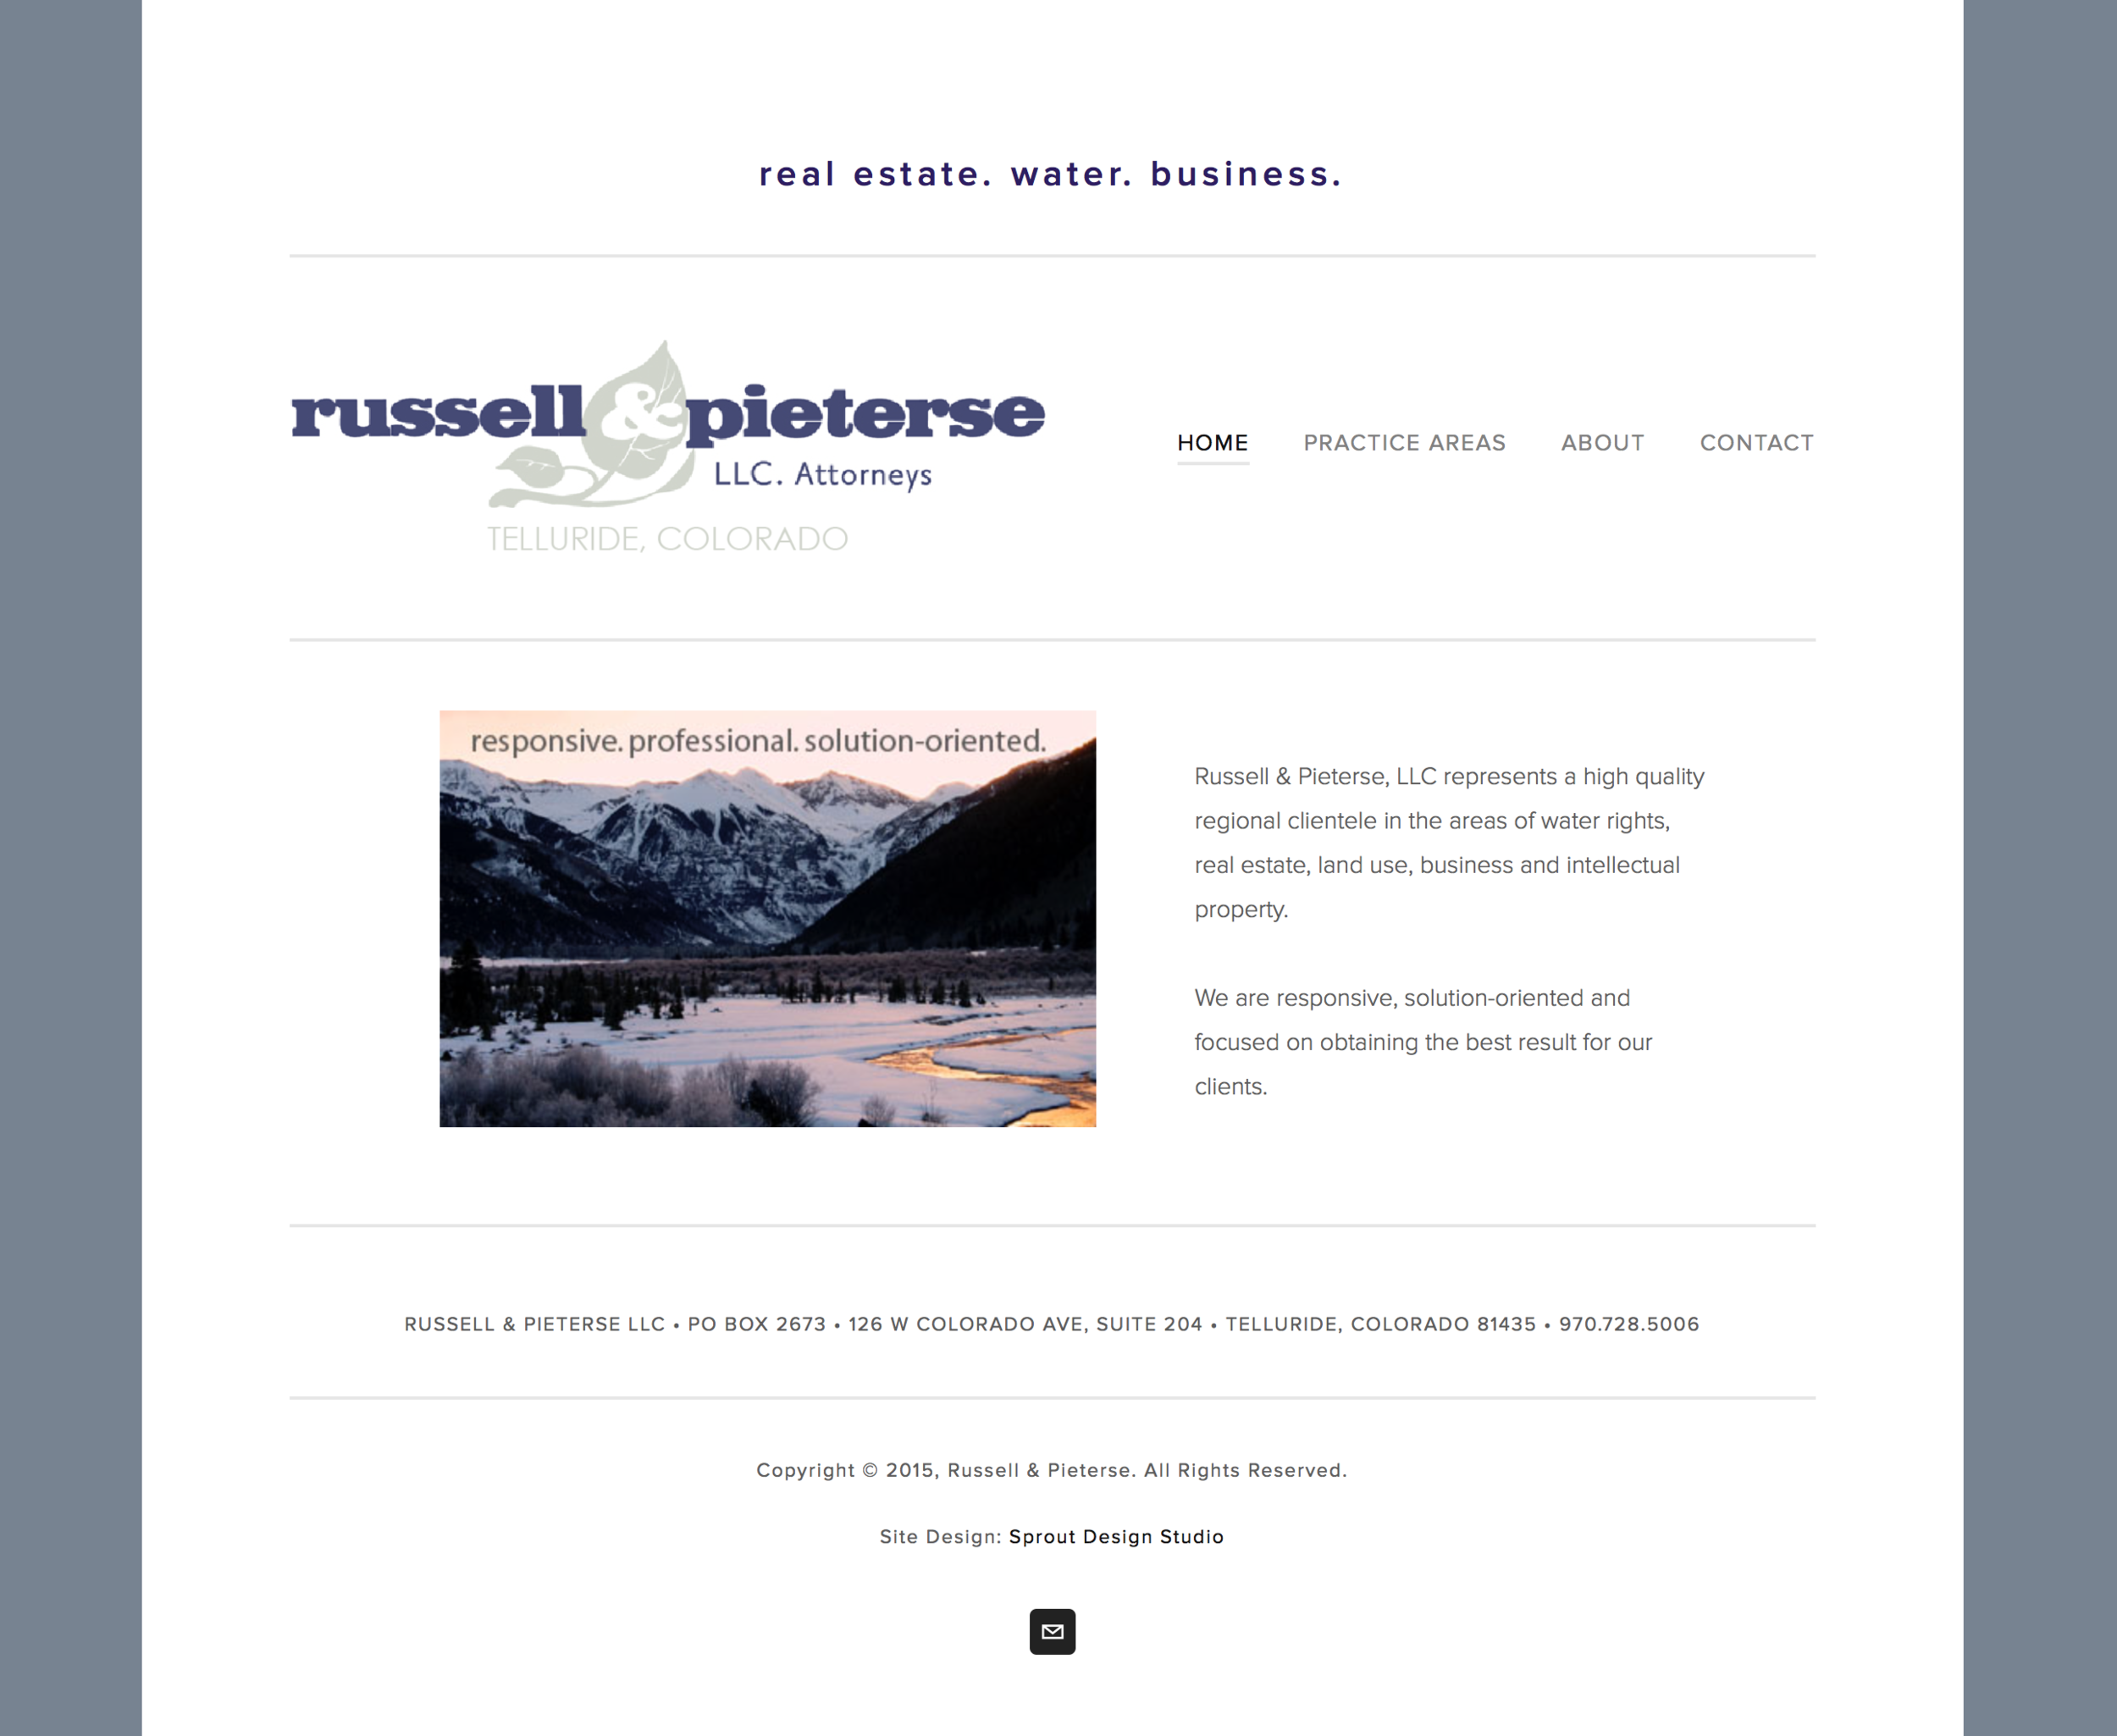 Website for Russell & Pieterse, Attorneys